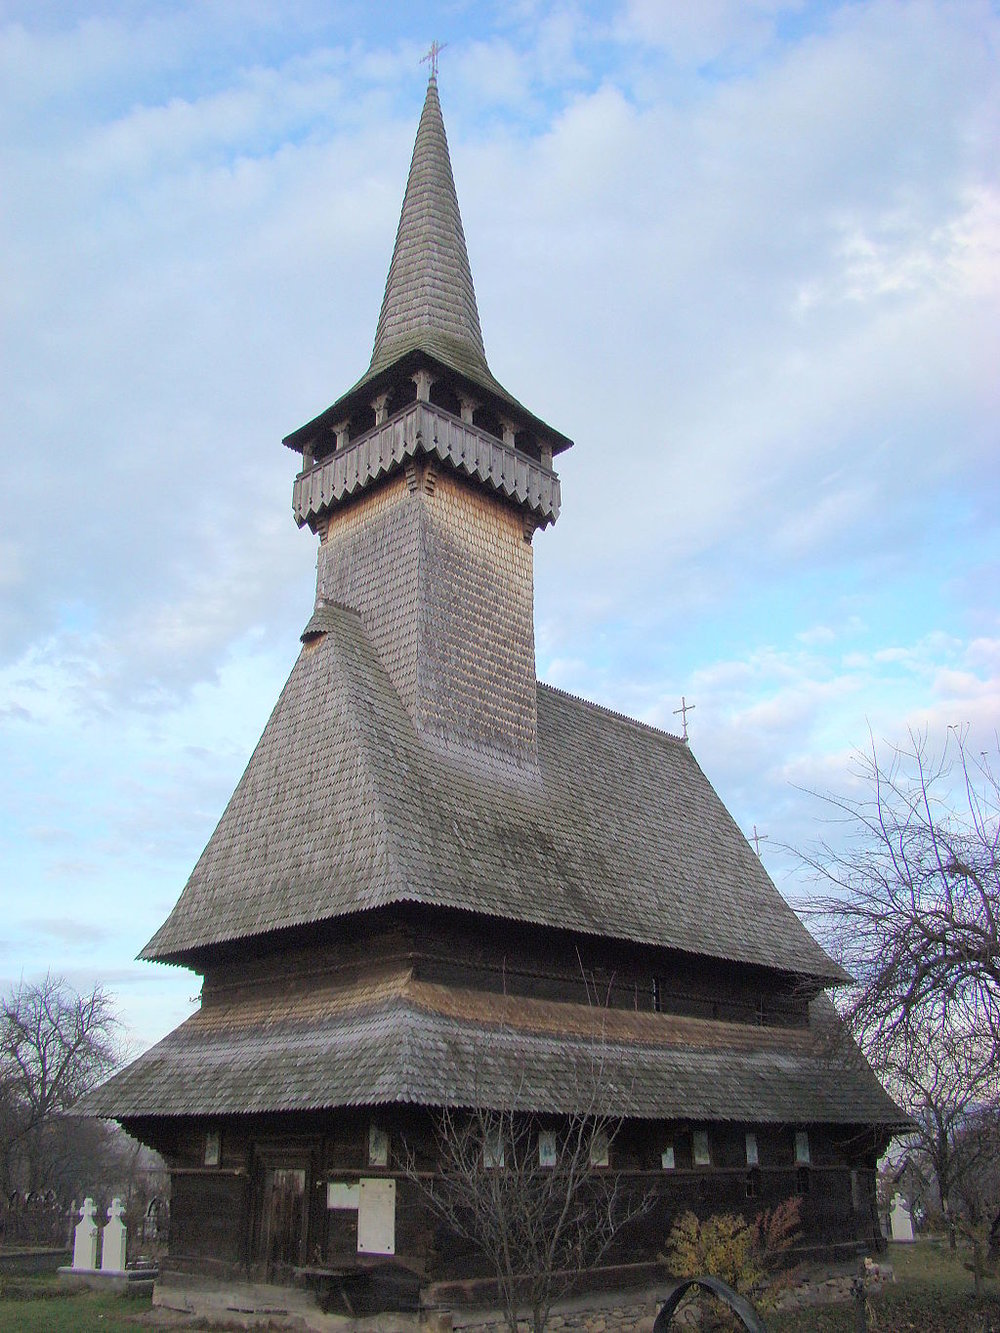 The wooden church of Sugatag (copyright: creative commons)